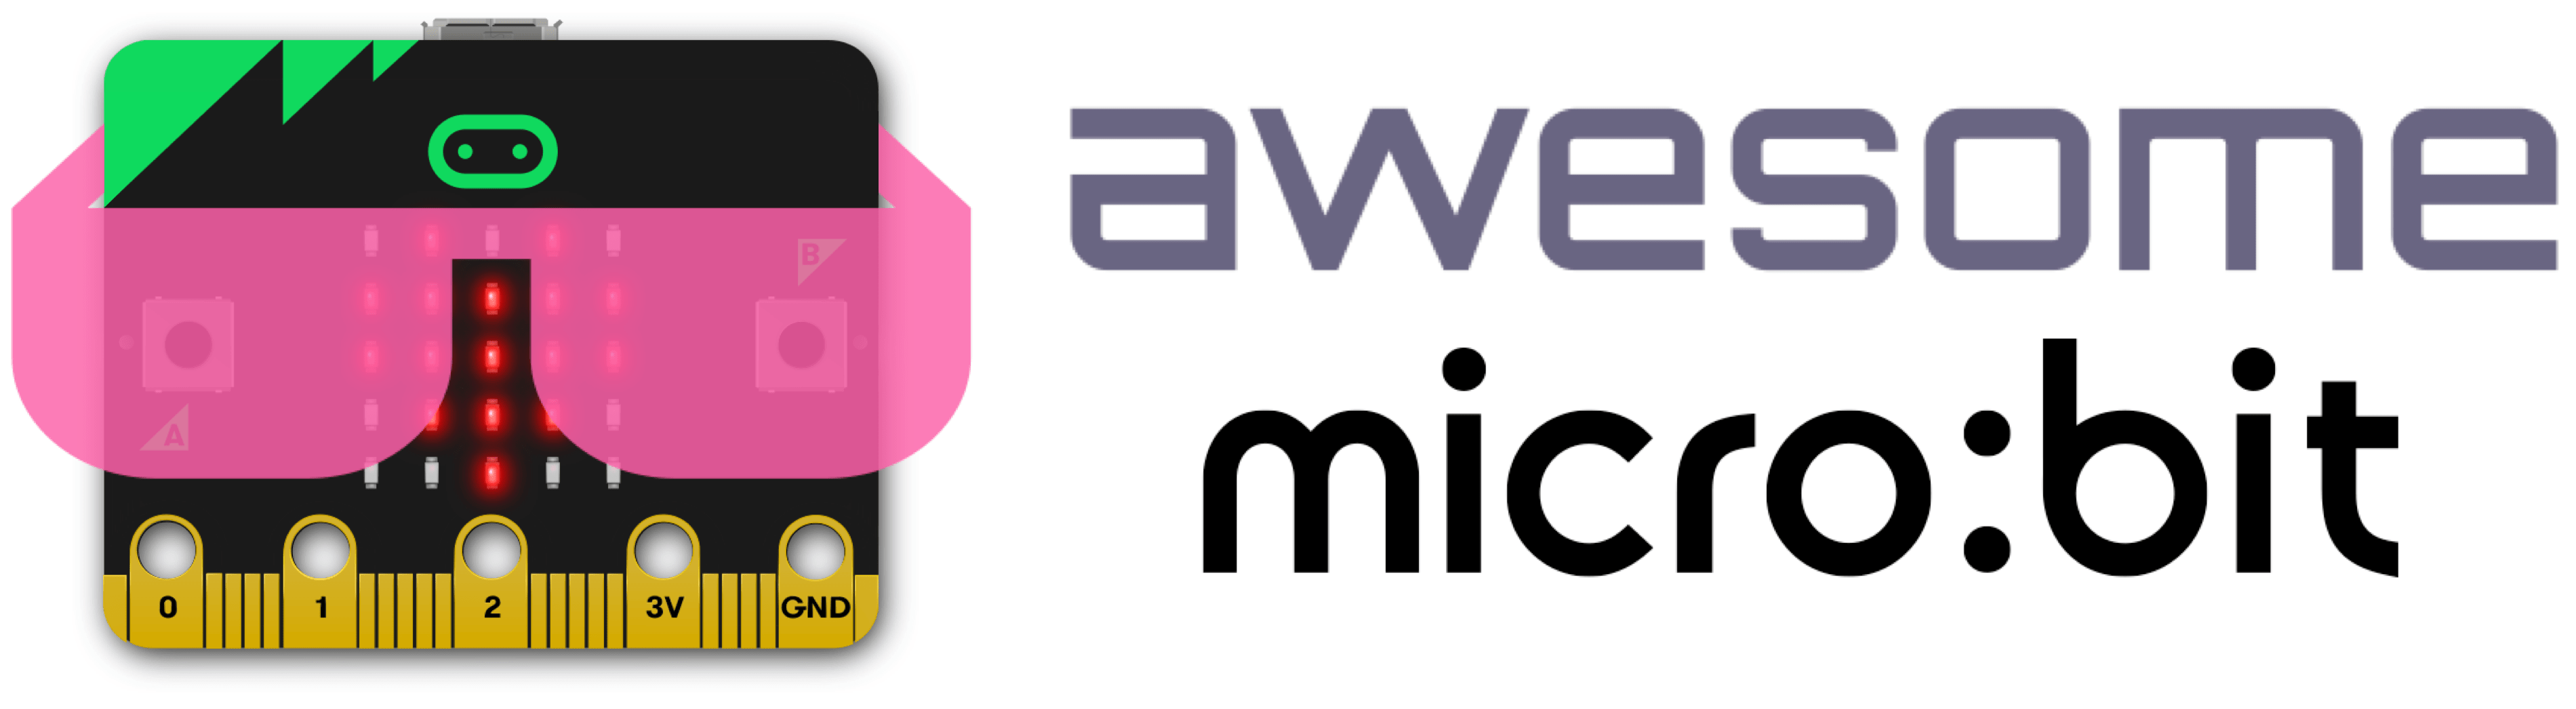 awesome micro:bit logo